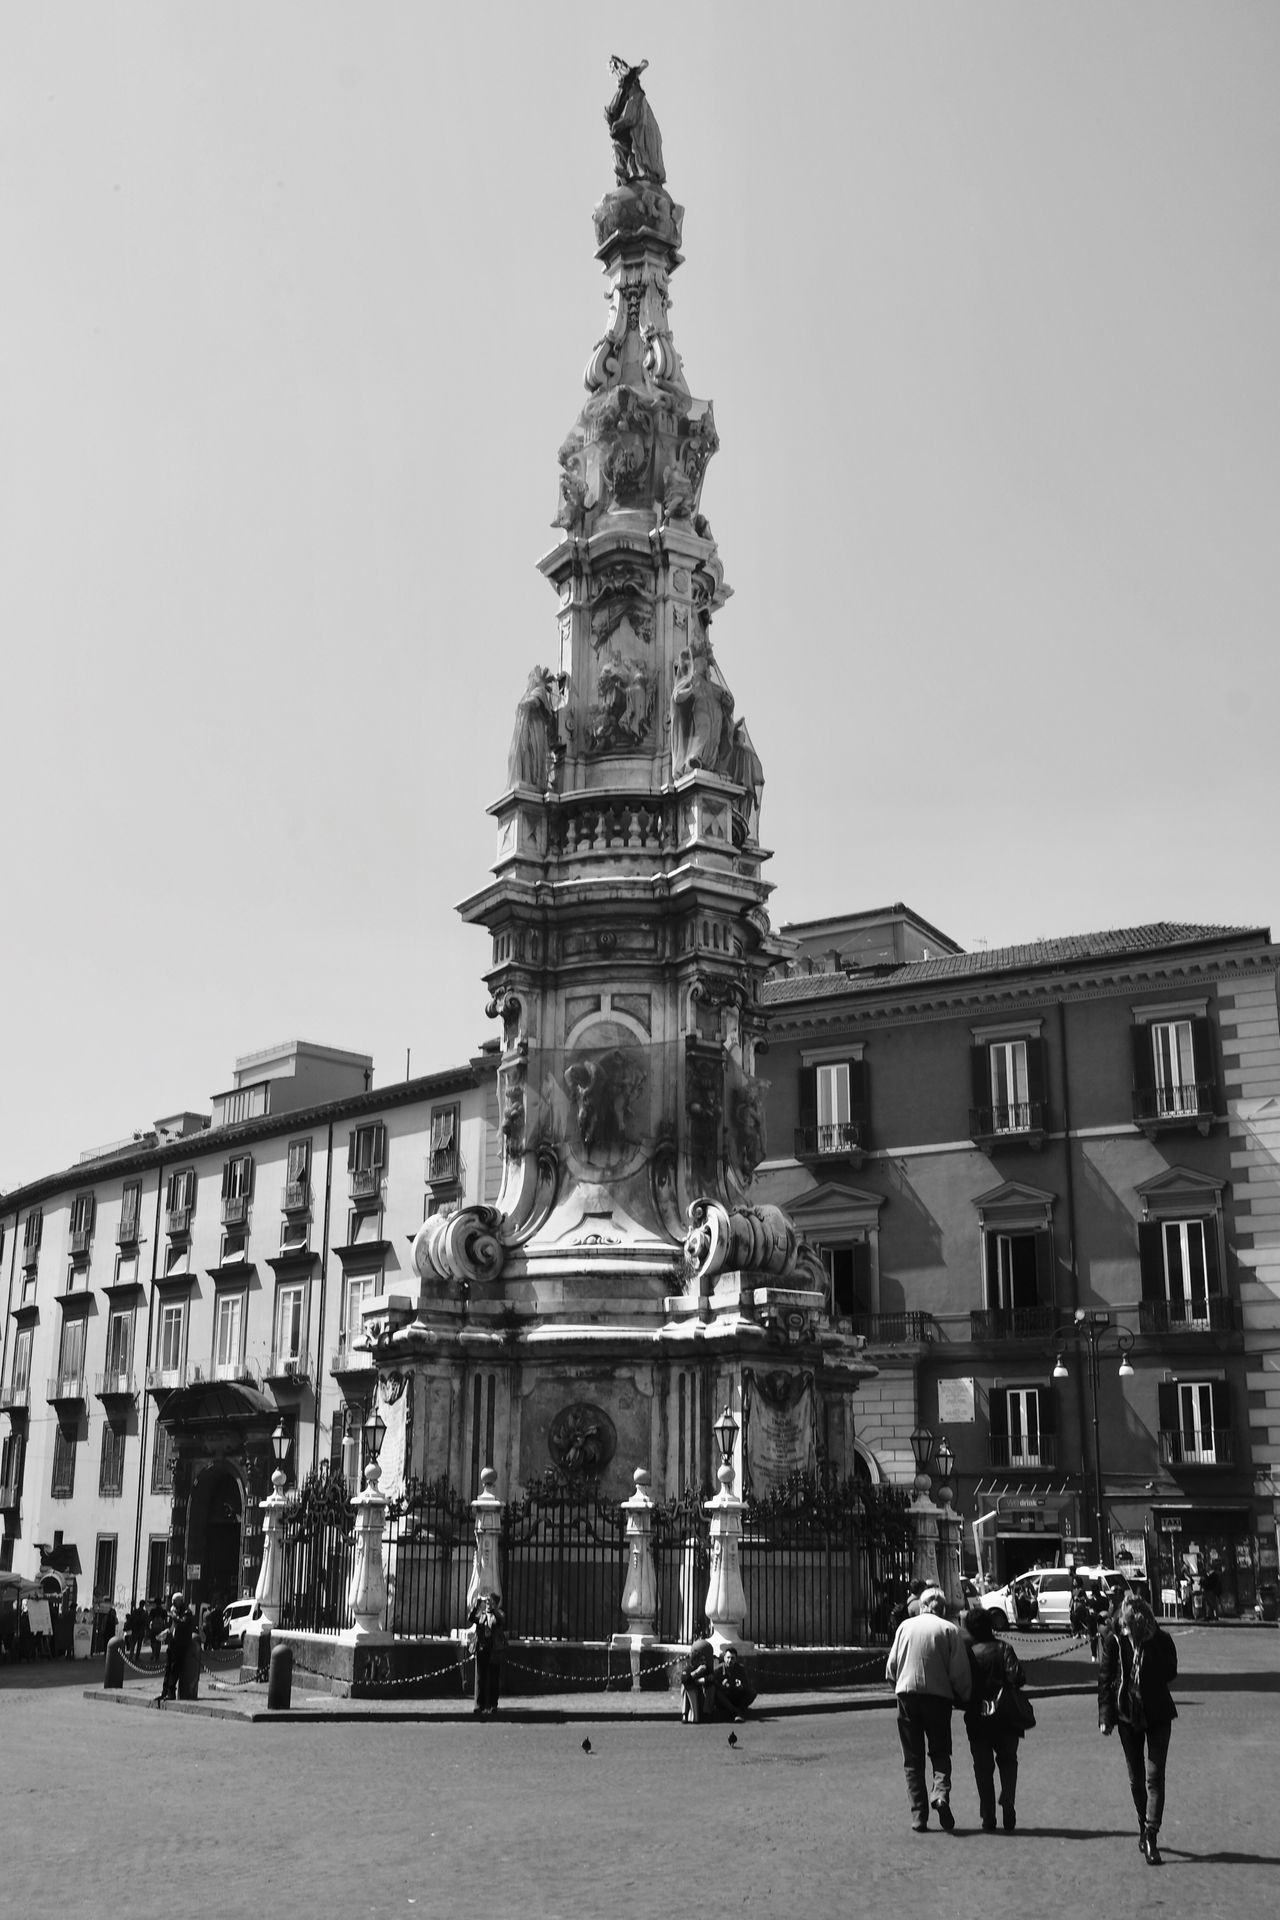 Architecture Built Structure Building Exterior Statue Sculpture Travel Destinations Tourism The Minimals (less Edit Juxt Photography) Discover Italy / With Ale History Art And Craft Travel Outdoors Clear Sky Real People Façade Day Large Group Of People City Architectural Column Sky Napoli Italy Italia